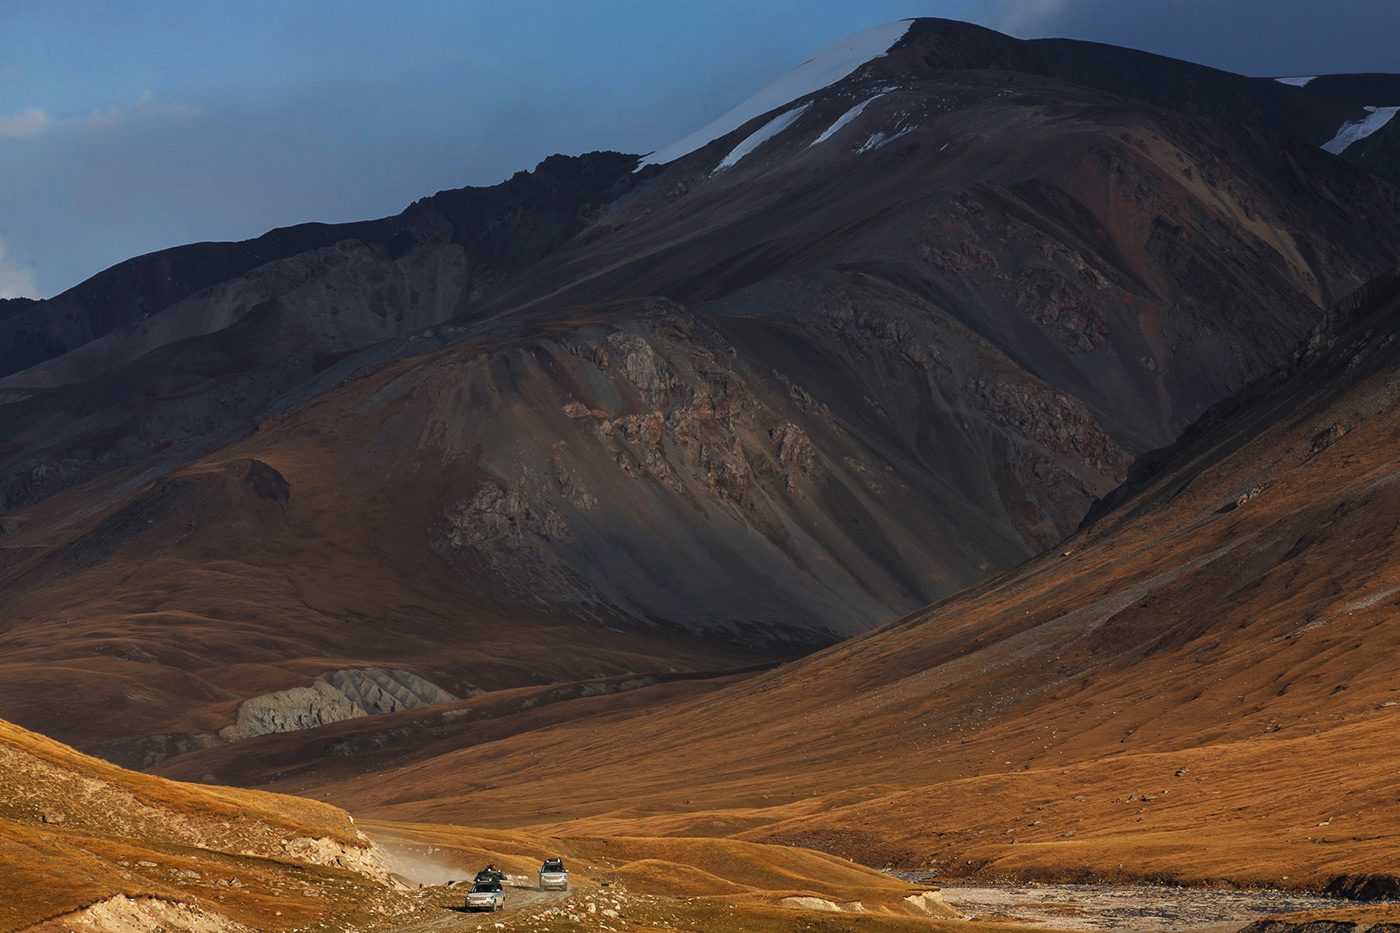 <p>Range Rover Hybrids are dwarfed by the mountains of Kyrgyzstan during the Silk Trail expedition to India.</p>